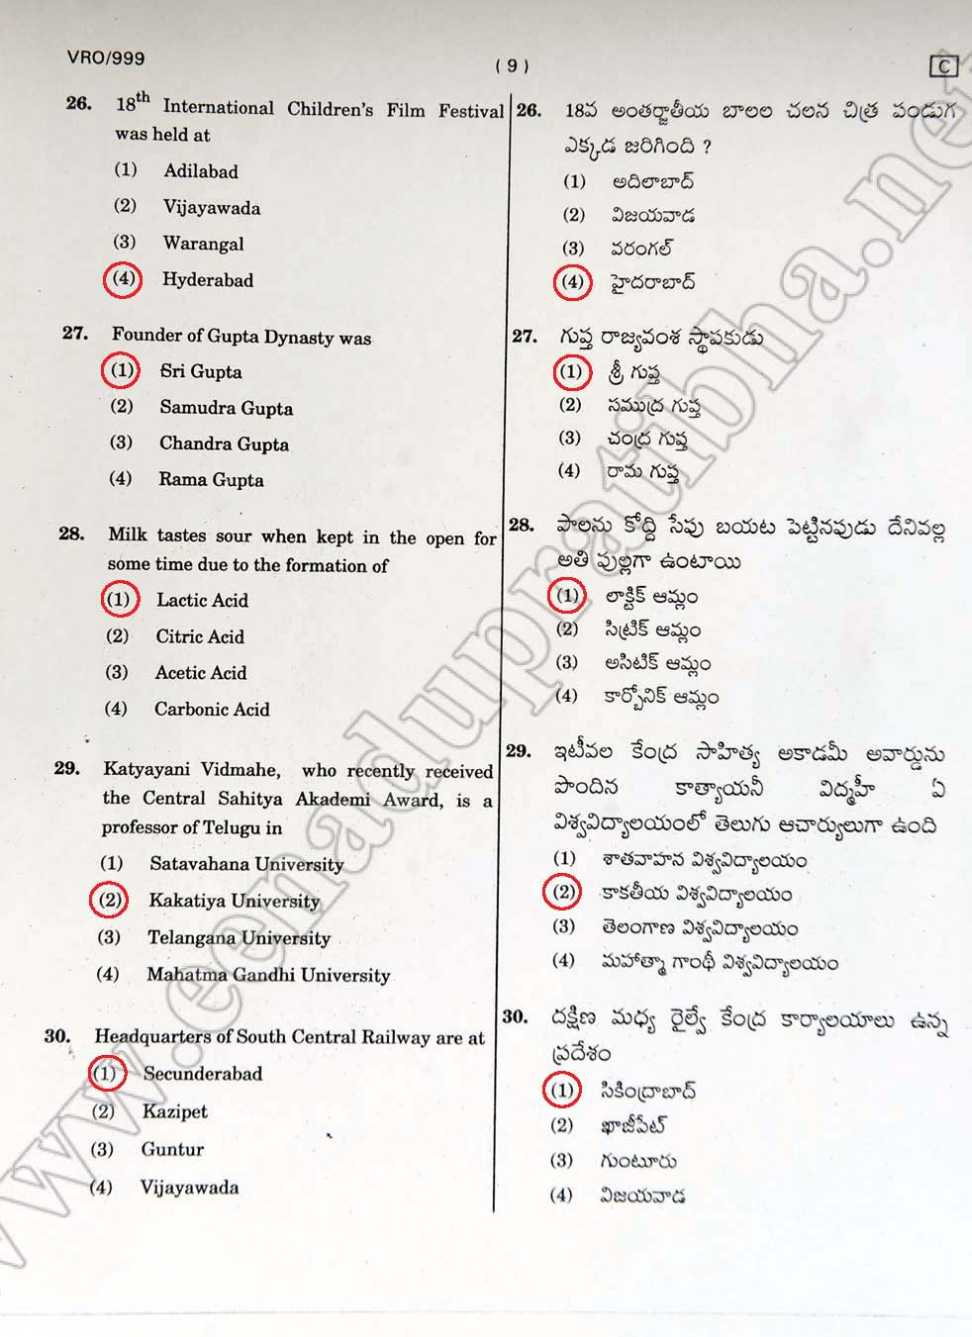 Previous VRO Papers With Answers - 2018-2019 StudyChaCha